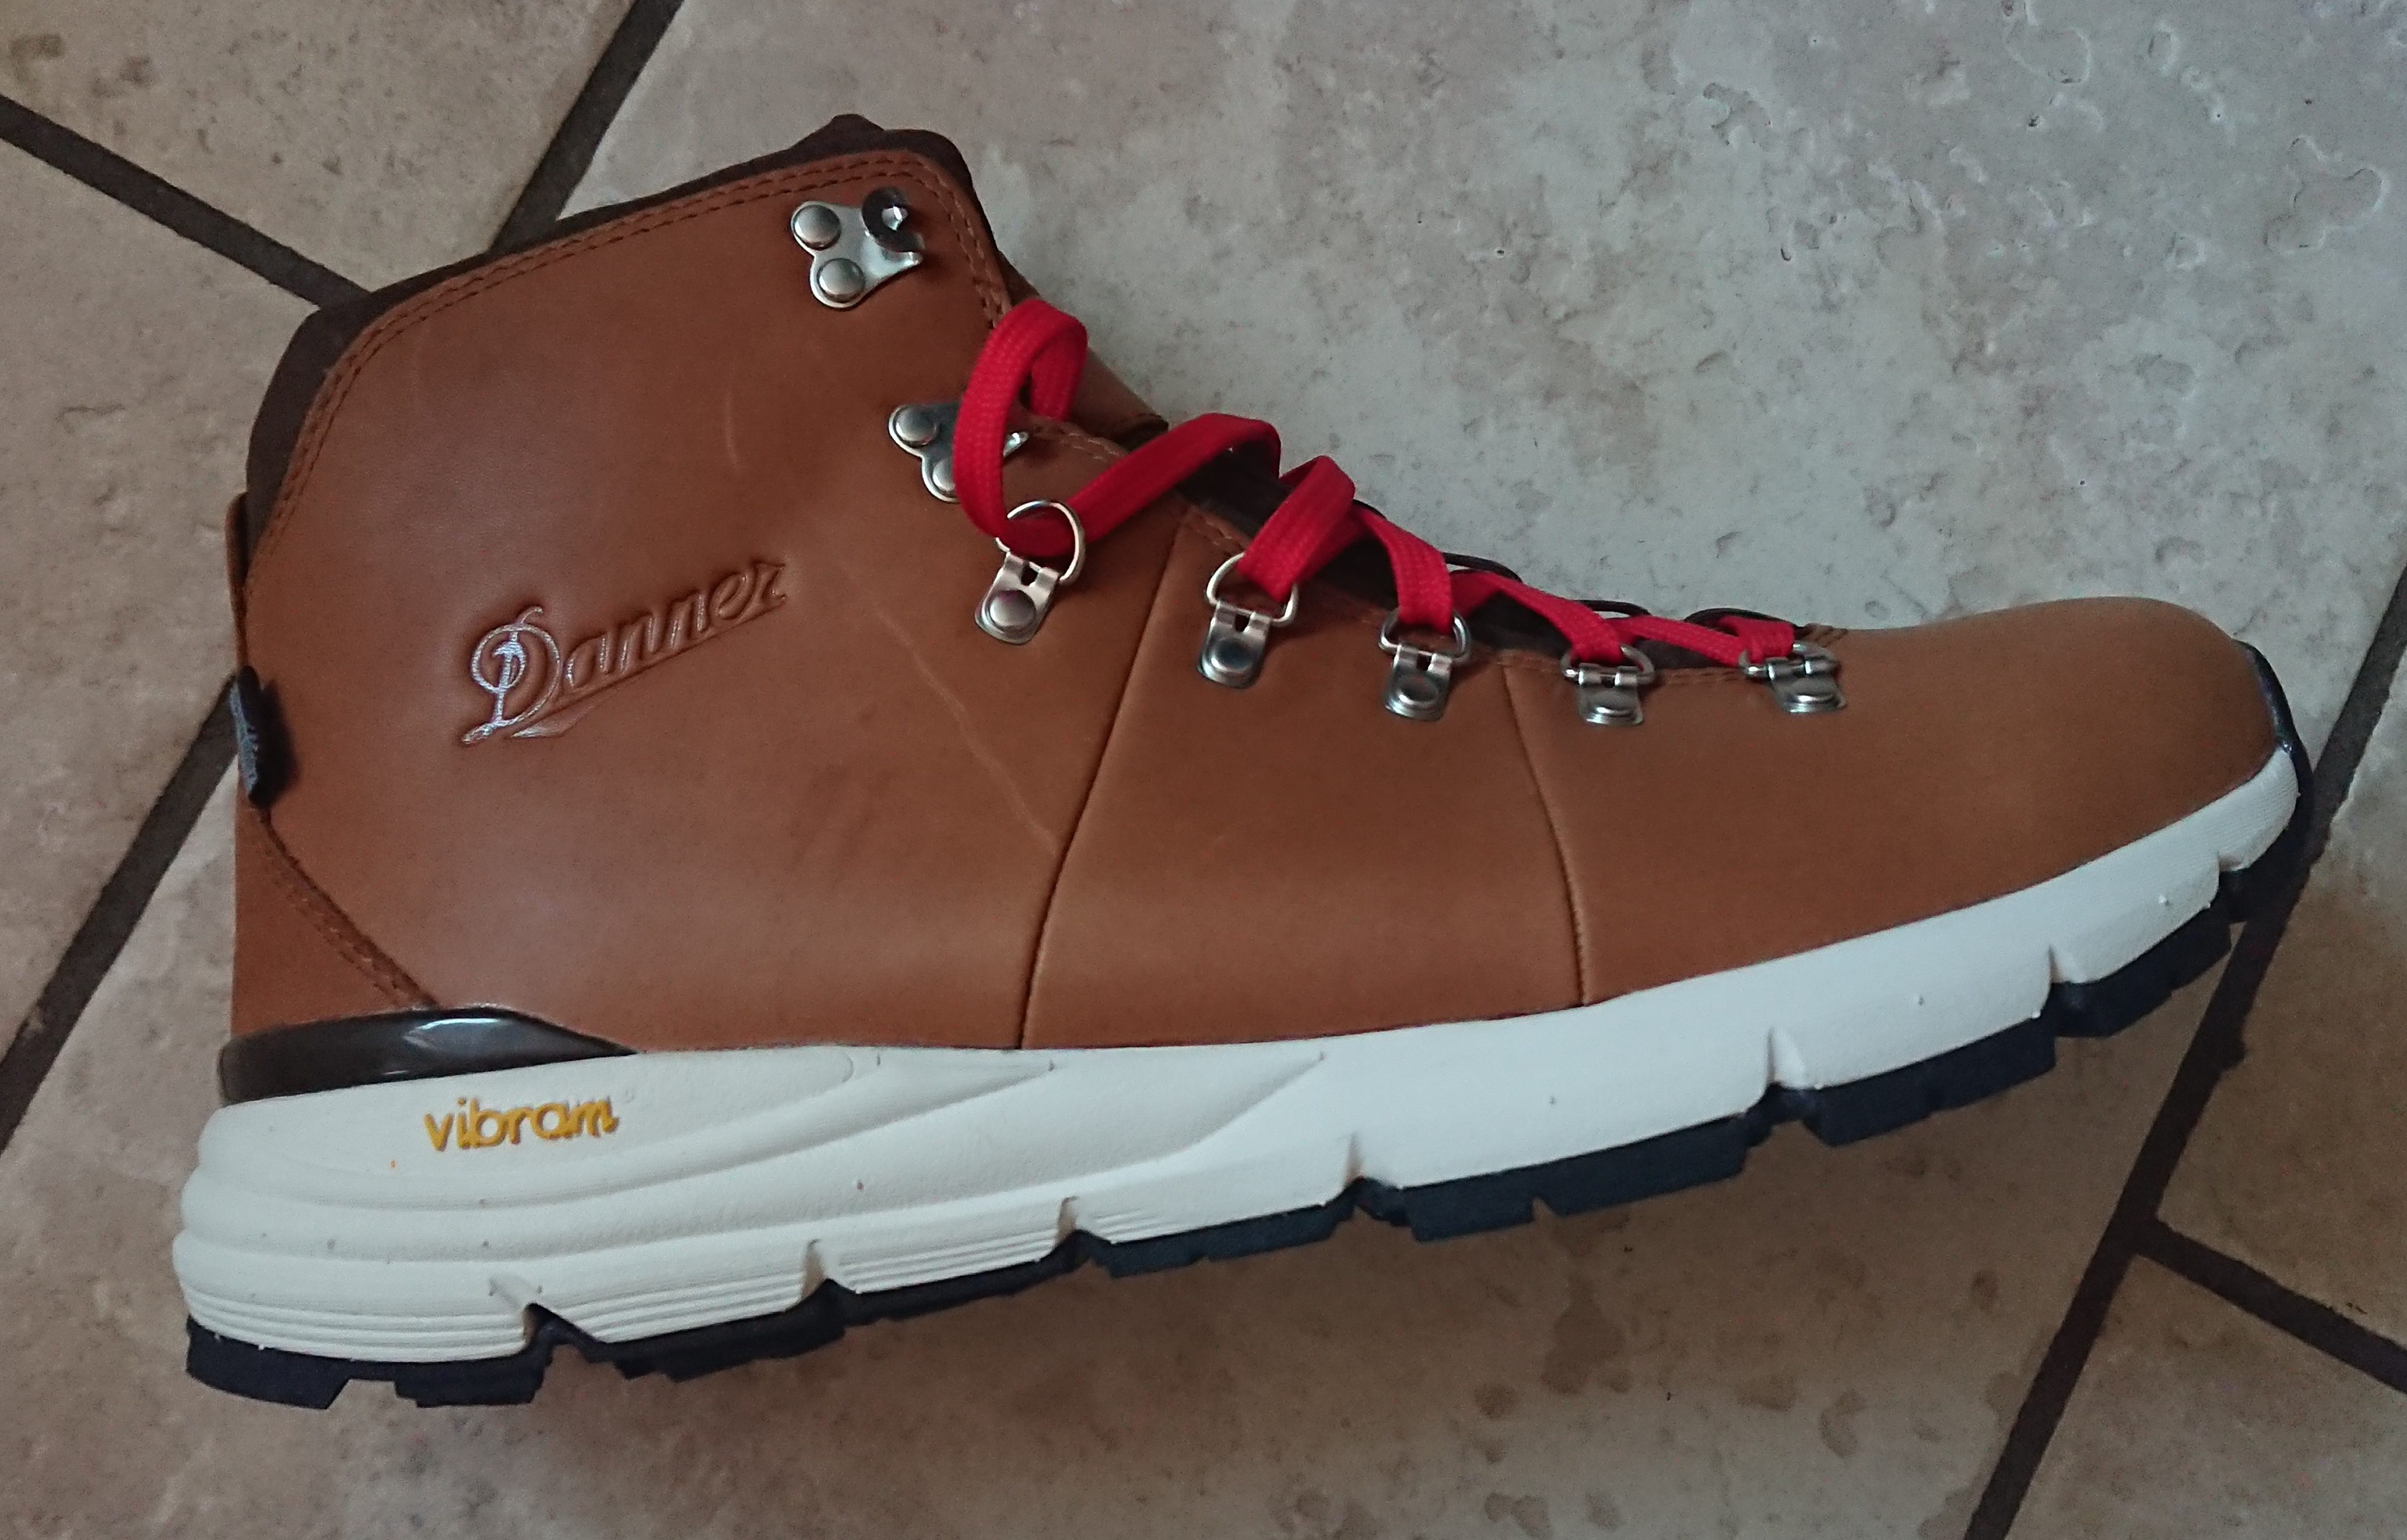 Danner Mountain 600 boot review